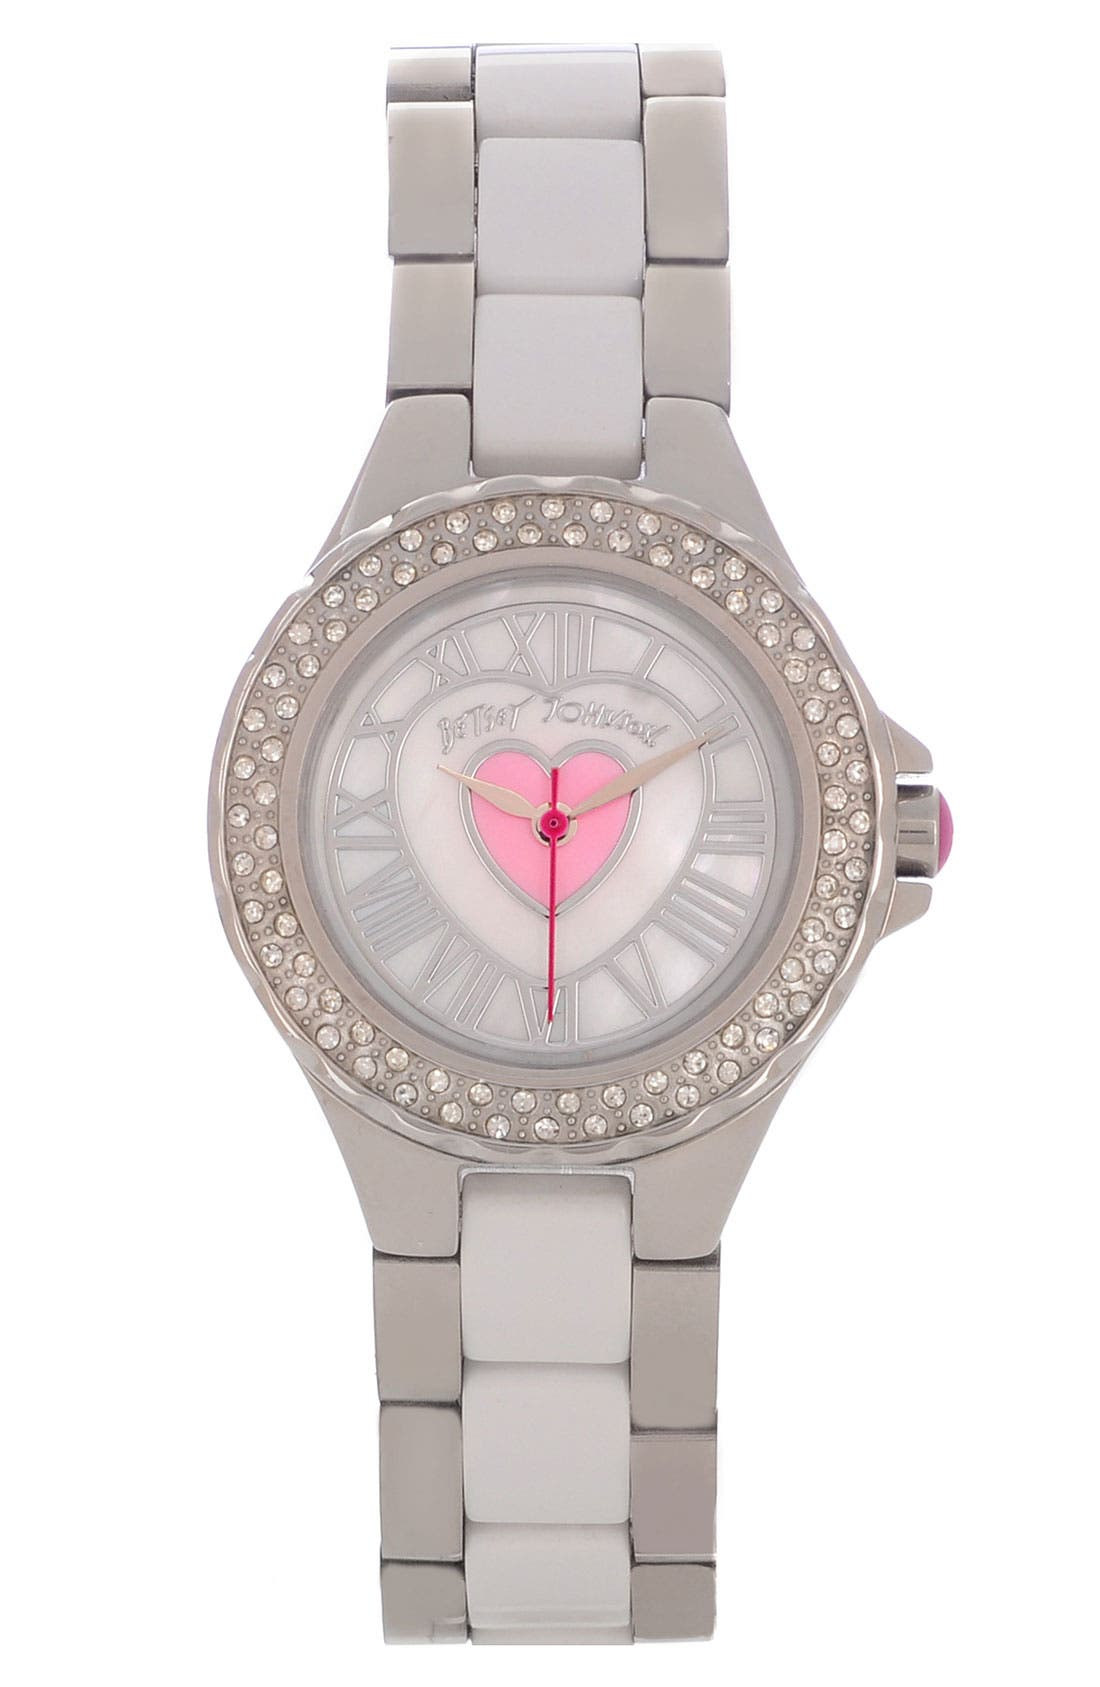 Main Image - Betsey Johnson Heart Detail Two Tone Watch, 27mm